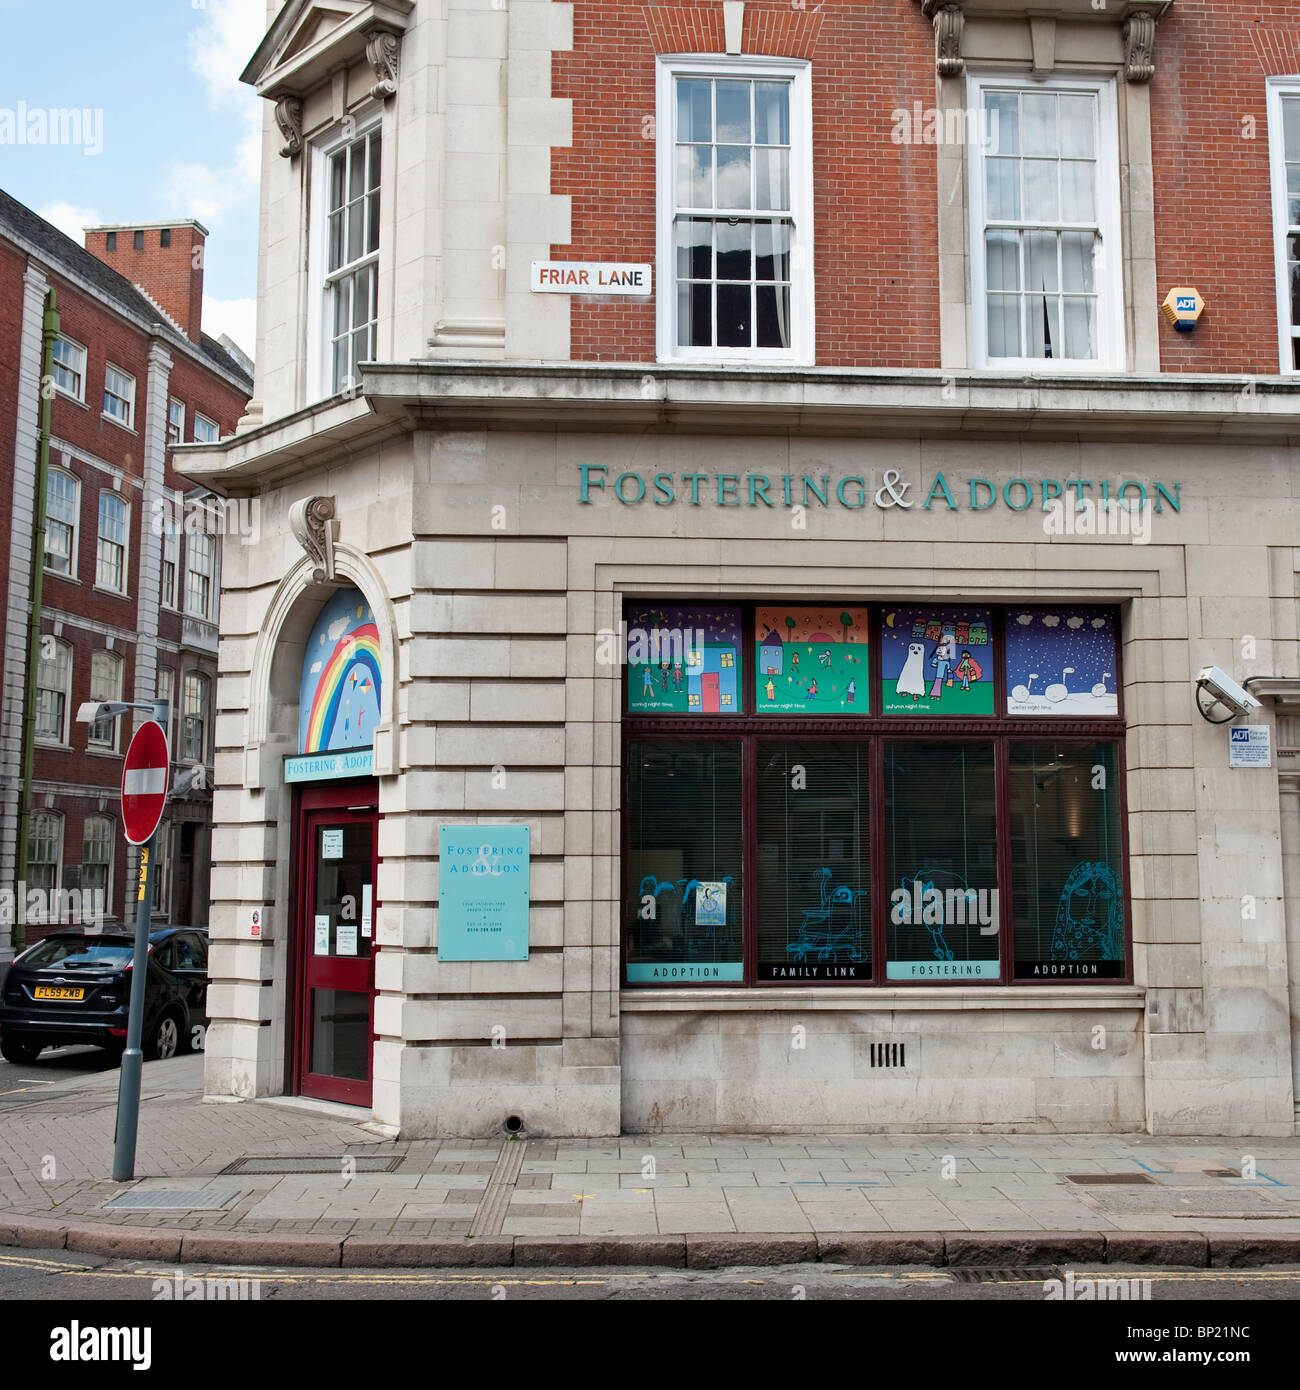 The Fostering & Adoption society on Friar Lane in Leicester City. - Stock Image